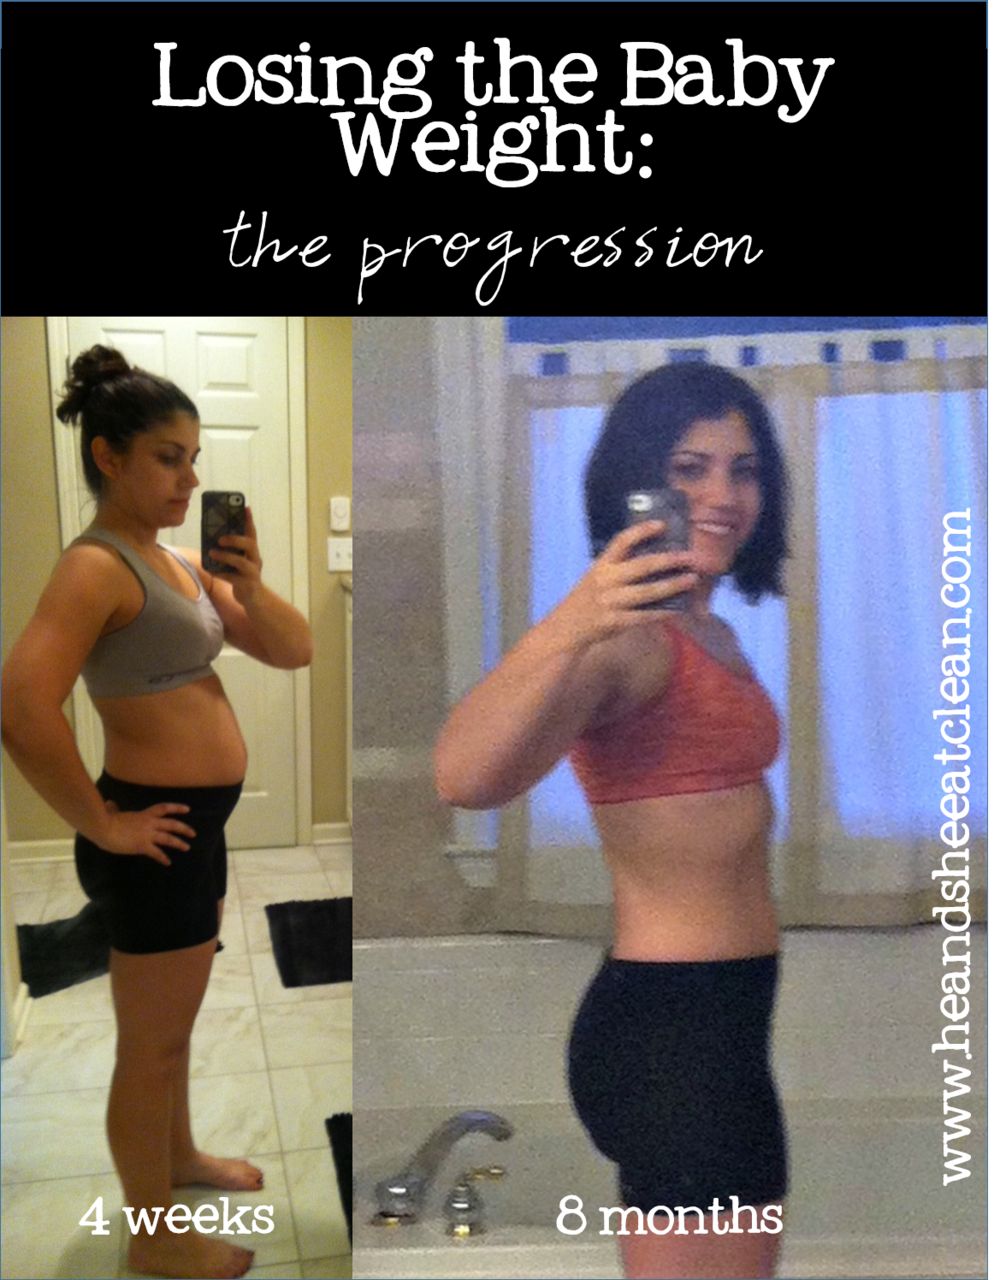 losing-the-baby-weight-side-by-side-view-progression-tiffany-staples-he-she-eat-clean-4-weeks-8-months.jpg.png